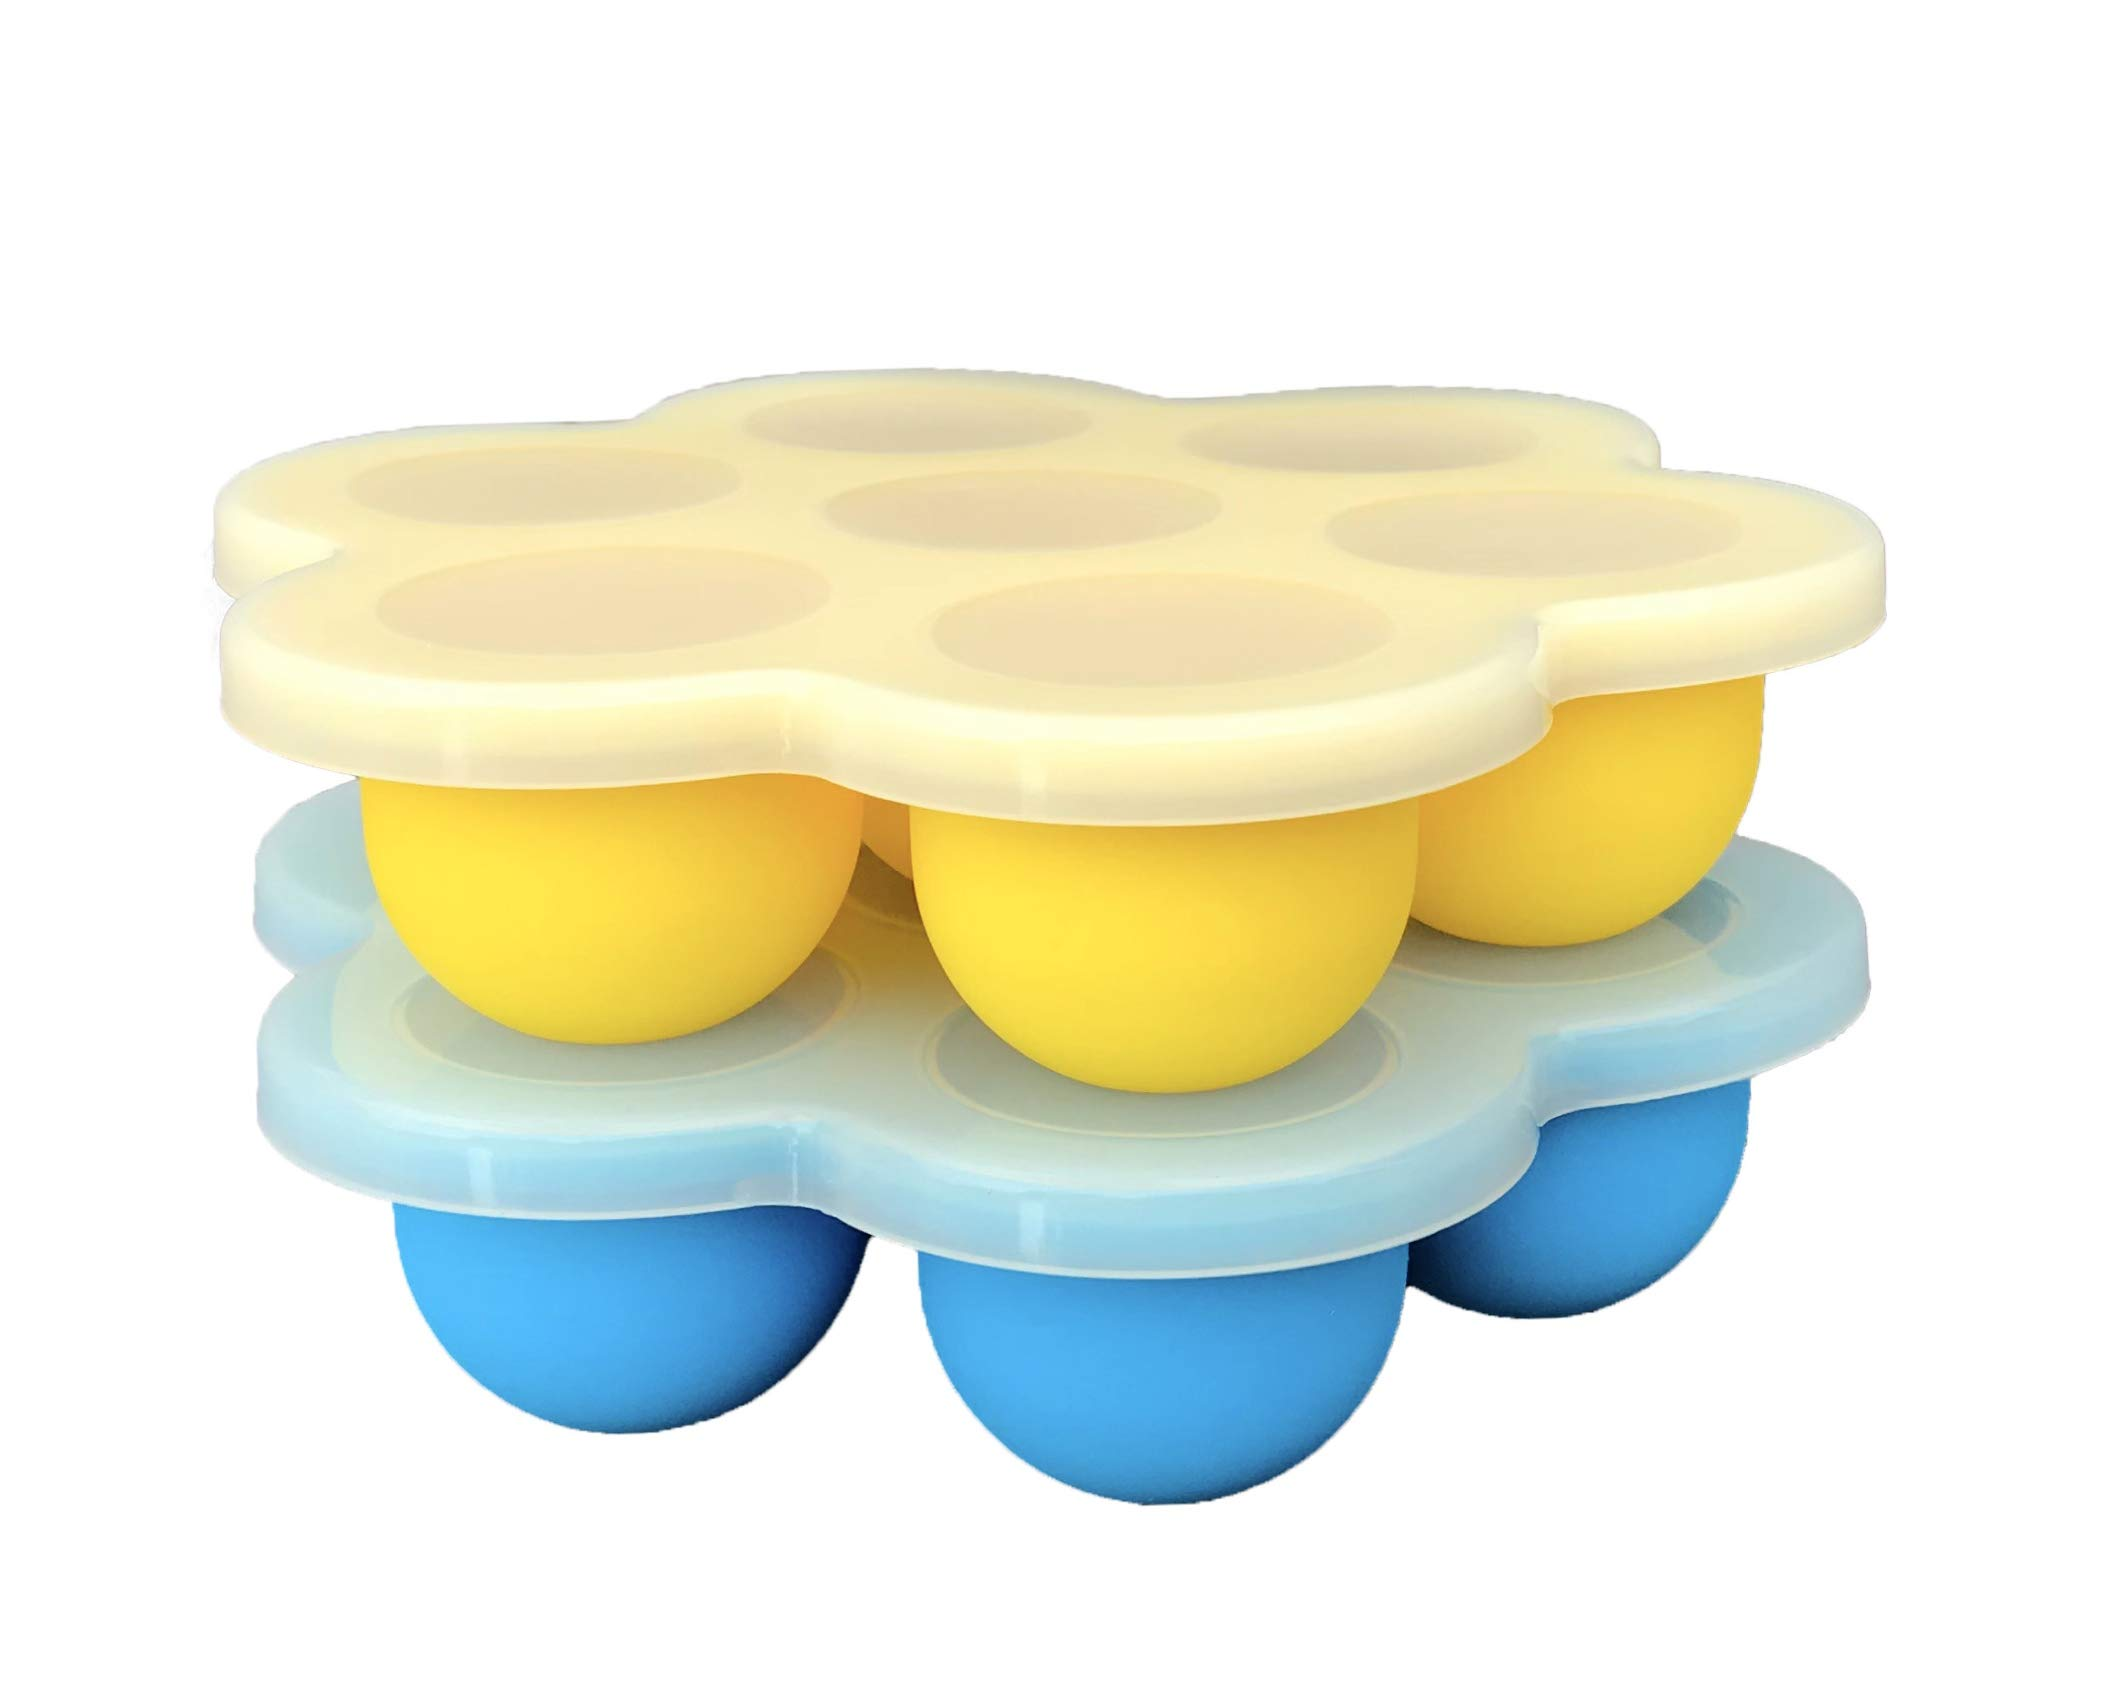 2-PACK Silicone Egg Bites Mold for Instant Pot Accessories 3 Quart, 5, 6 qt Pressure Cooker - BPA Free Molds for Fat Bombs, Sous Vide Egg Bite, Baby Food Freezer Trays 1oz portions Mini Molds by Mimapac (Image #1)